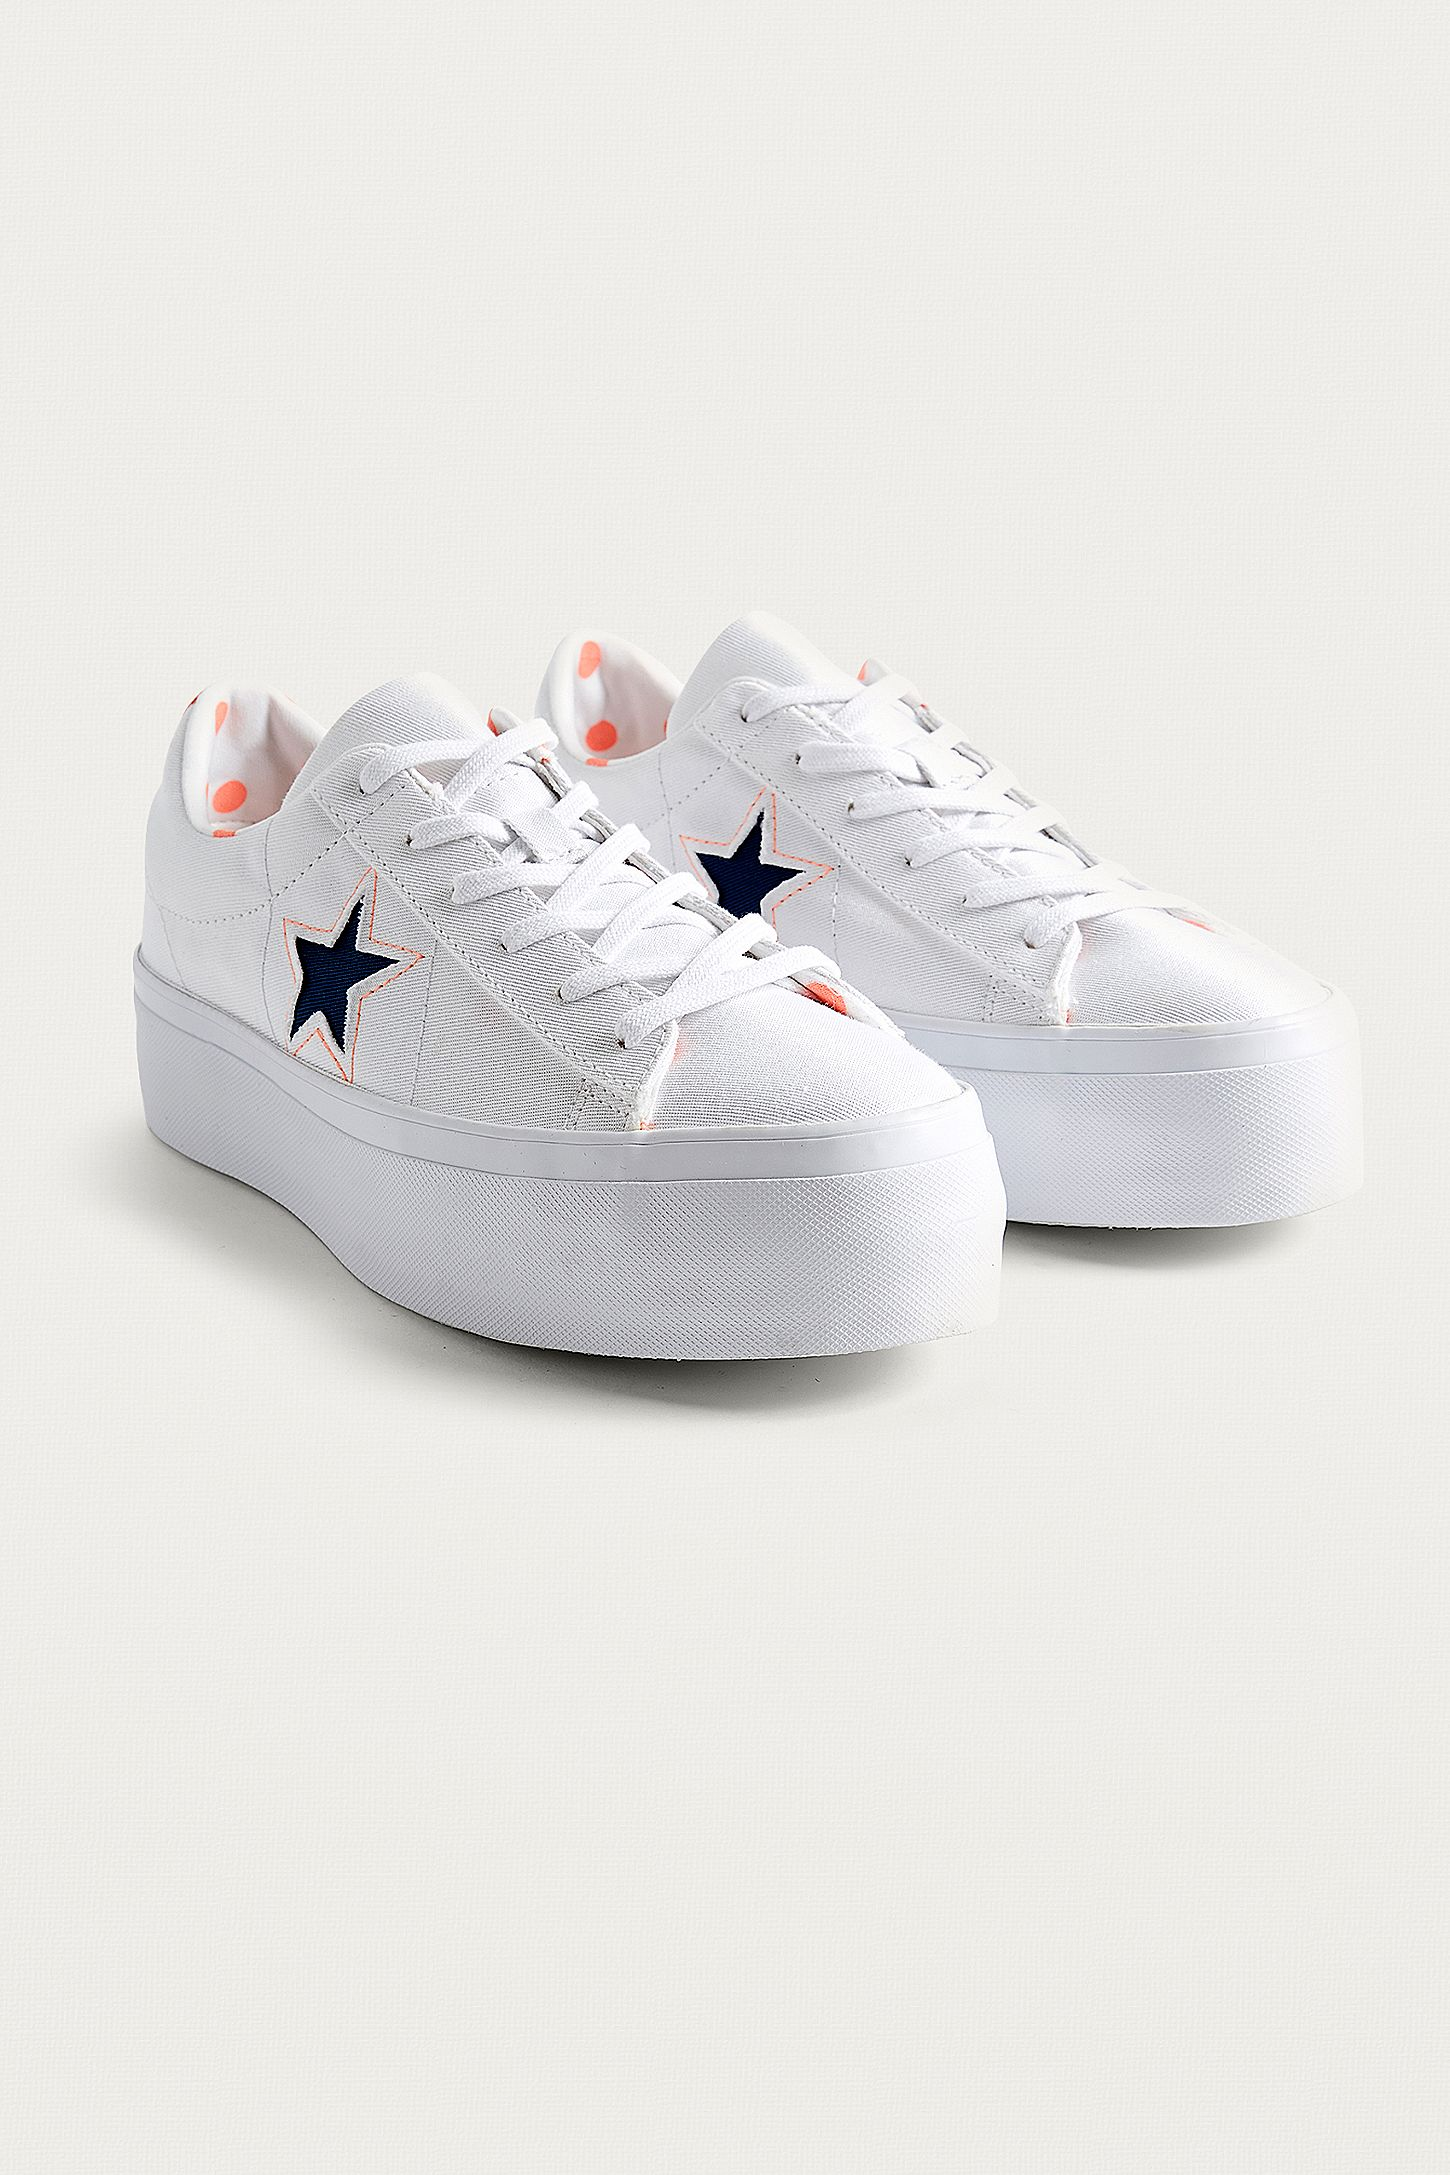 bc33b14c994 Converse One Star White Platform Trainers. Click on image to zoom. Hover to  zoom. Double Tap to Zoom